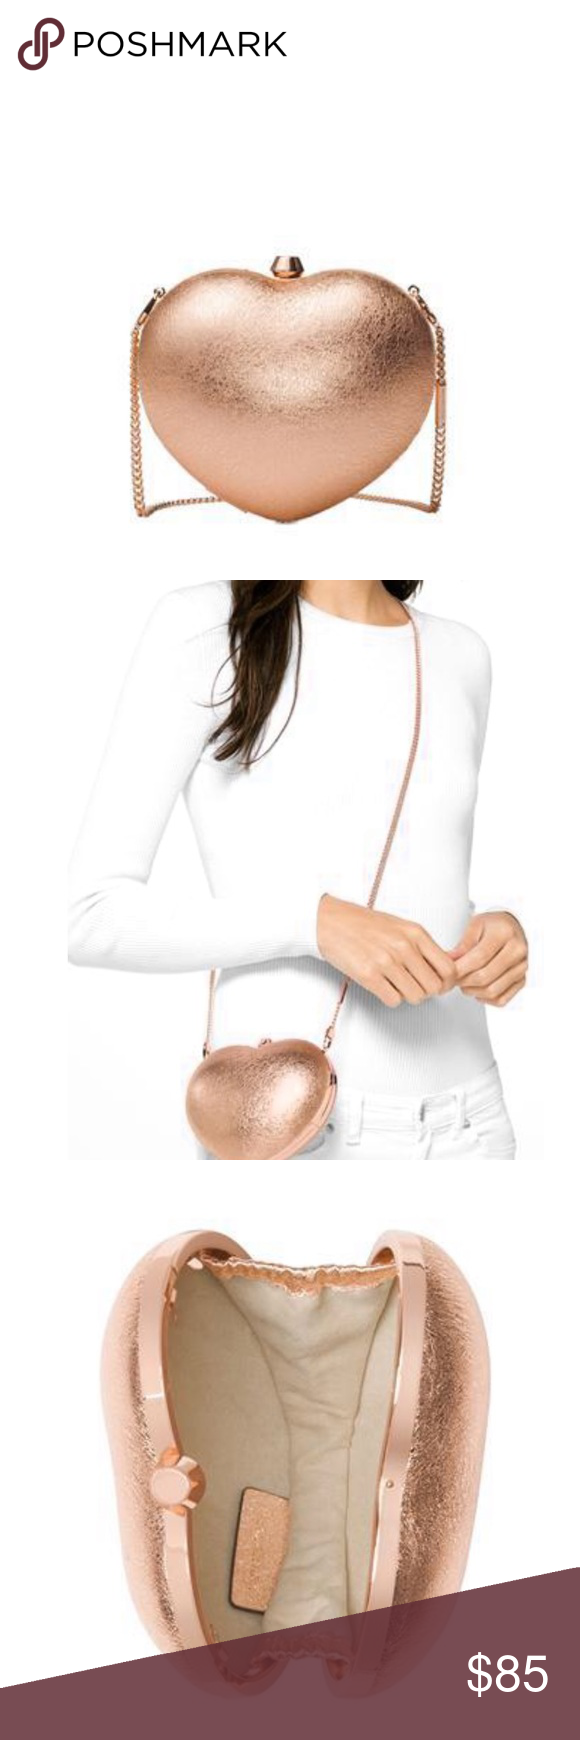 6b56bb78c43a MICHAEL Michael Kors Heart Box Clutch| Valentine's Small Heart Box Clutch  Leather Pearl RoseGold Brand New with Tags MICHAEL Michael Kors Bags